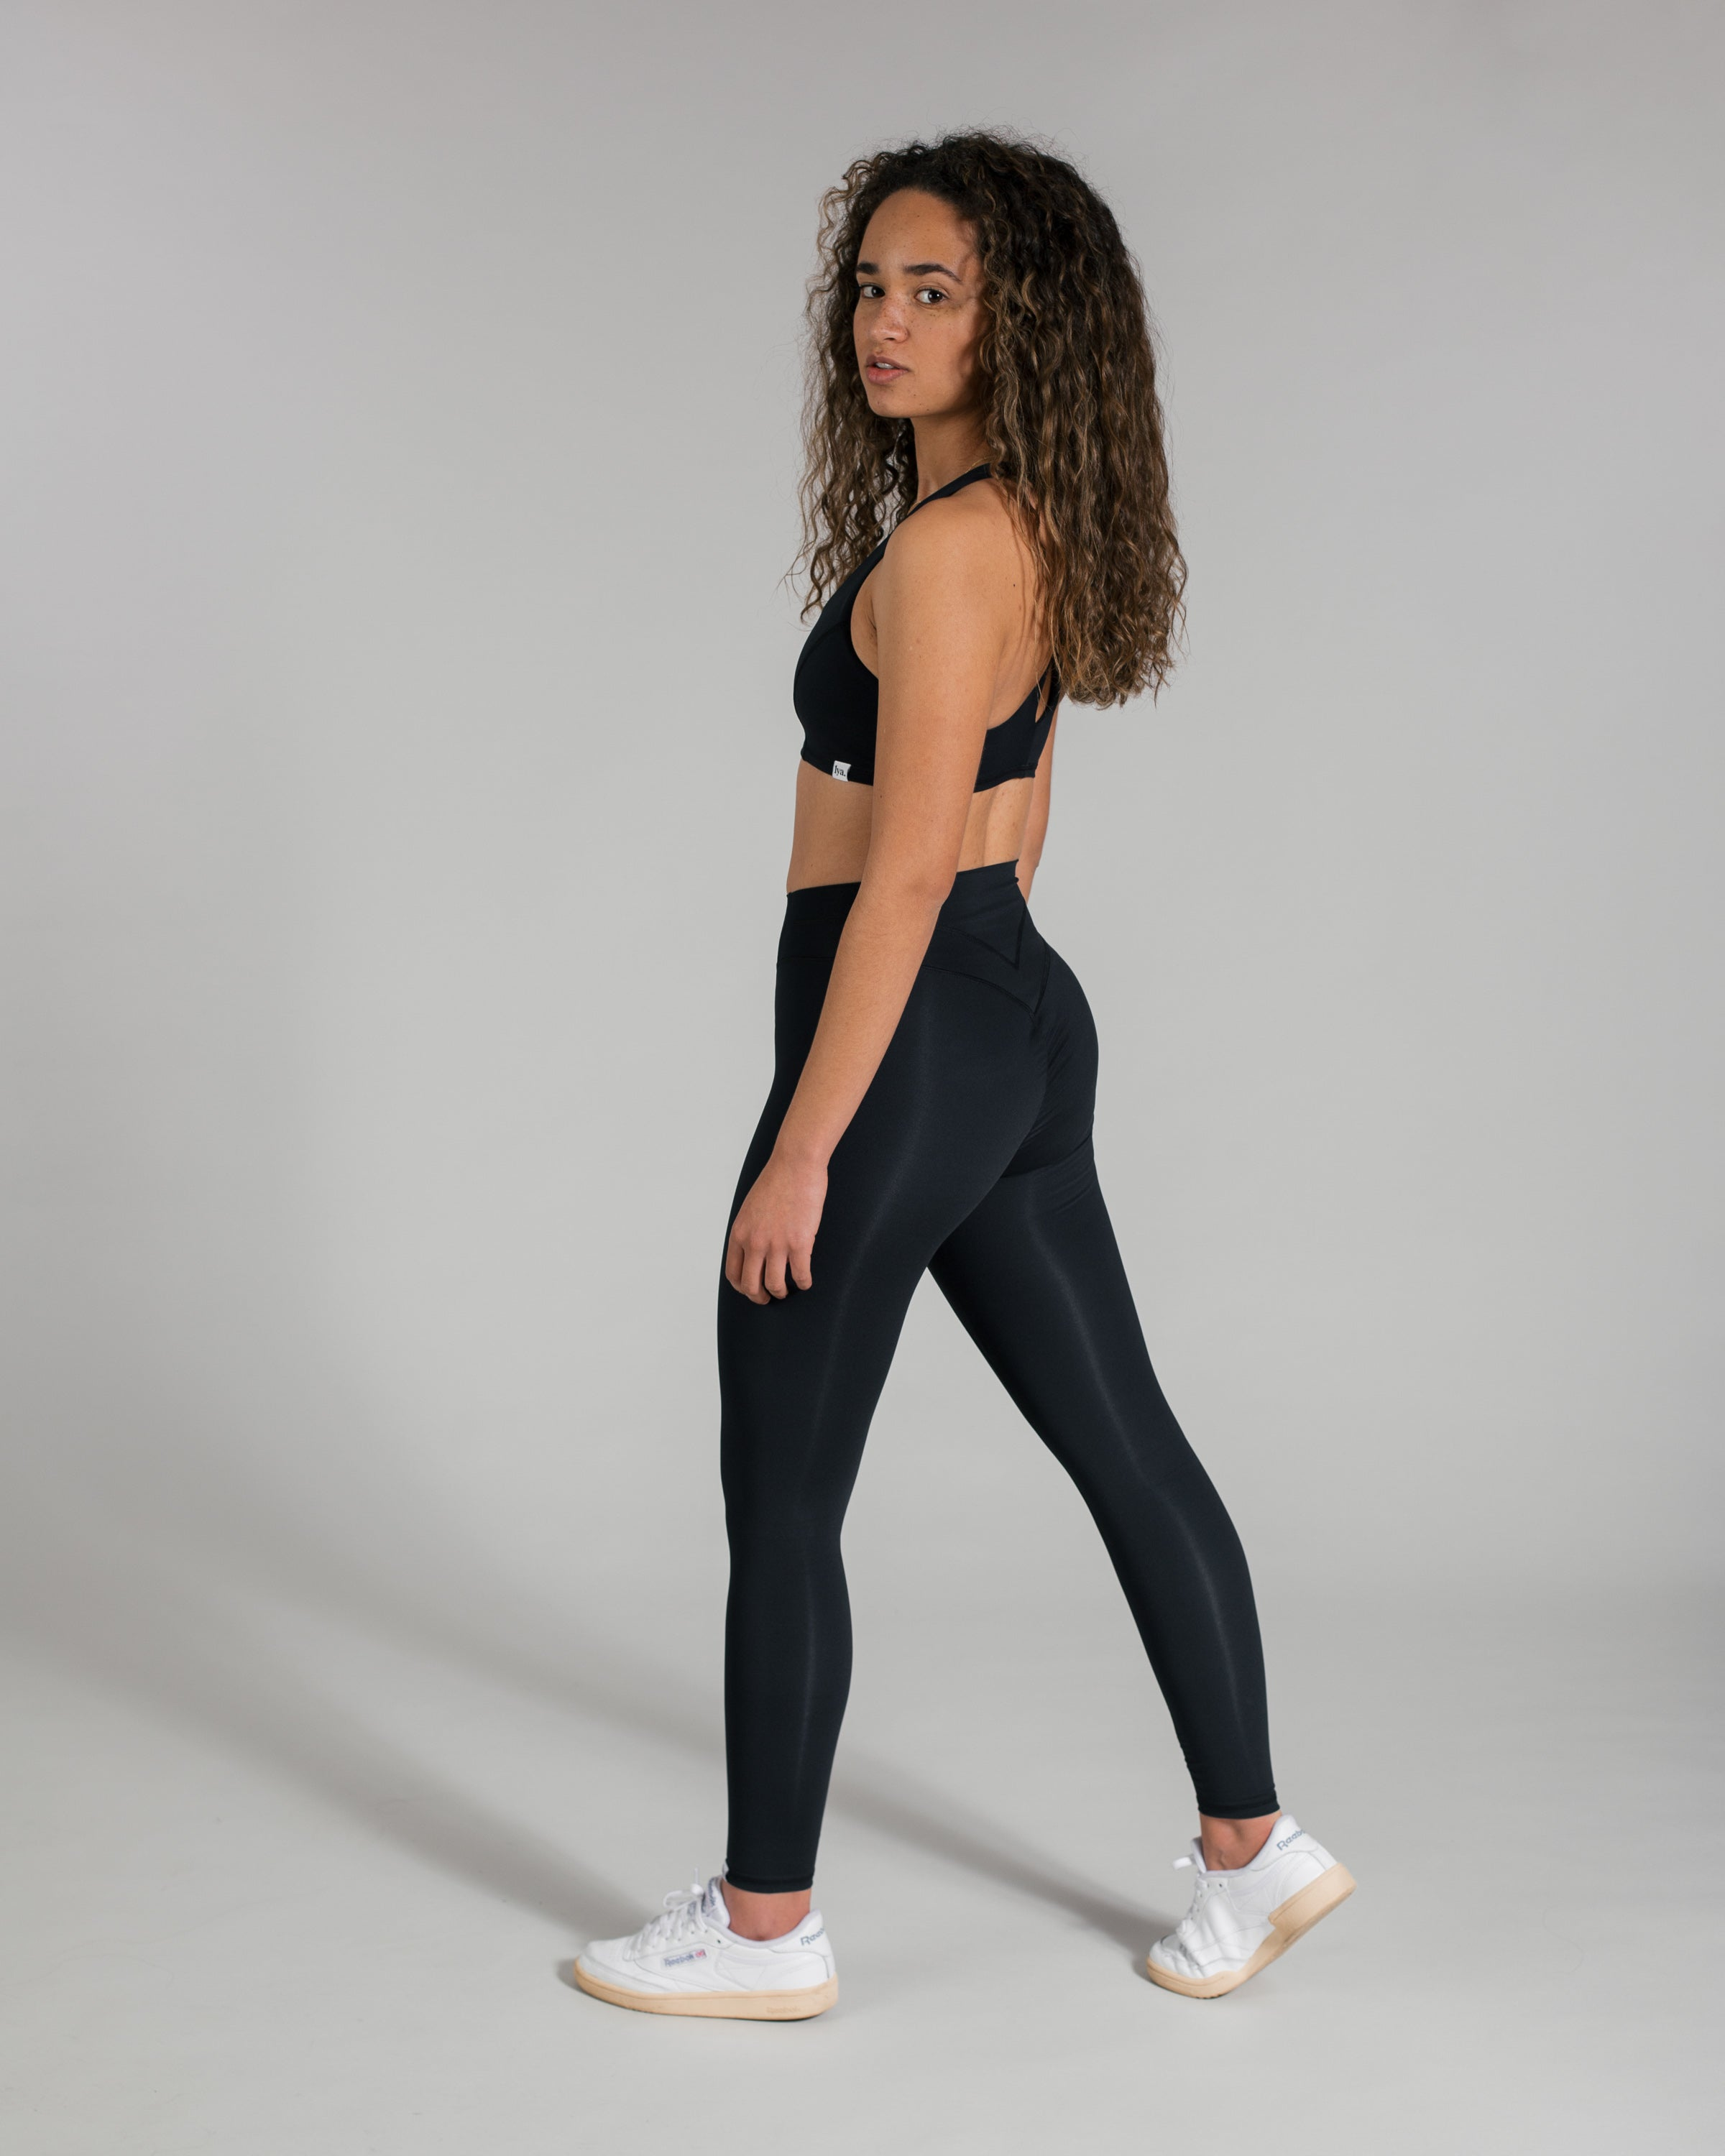 Flex Leggings - Preto Infinito